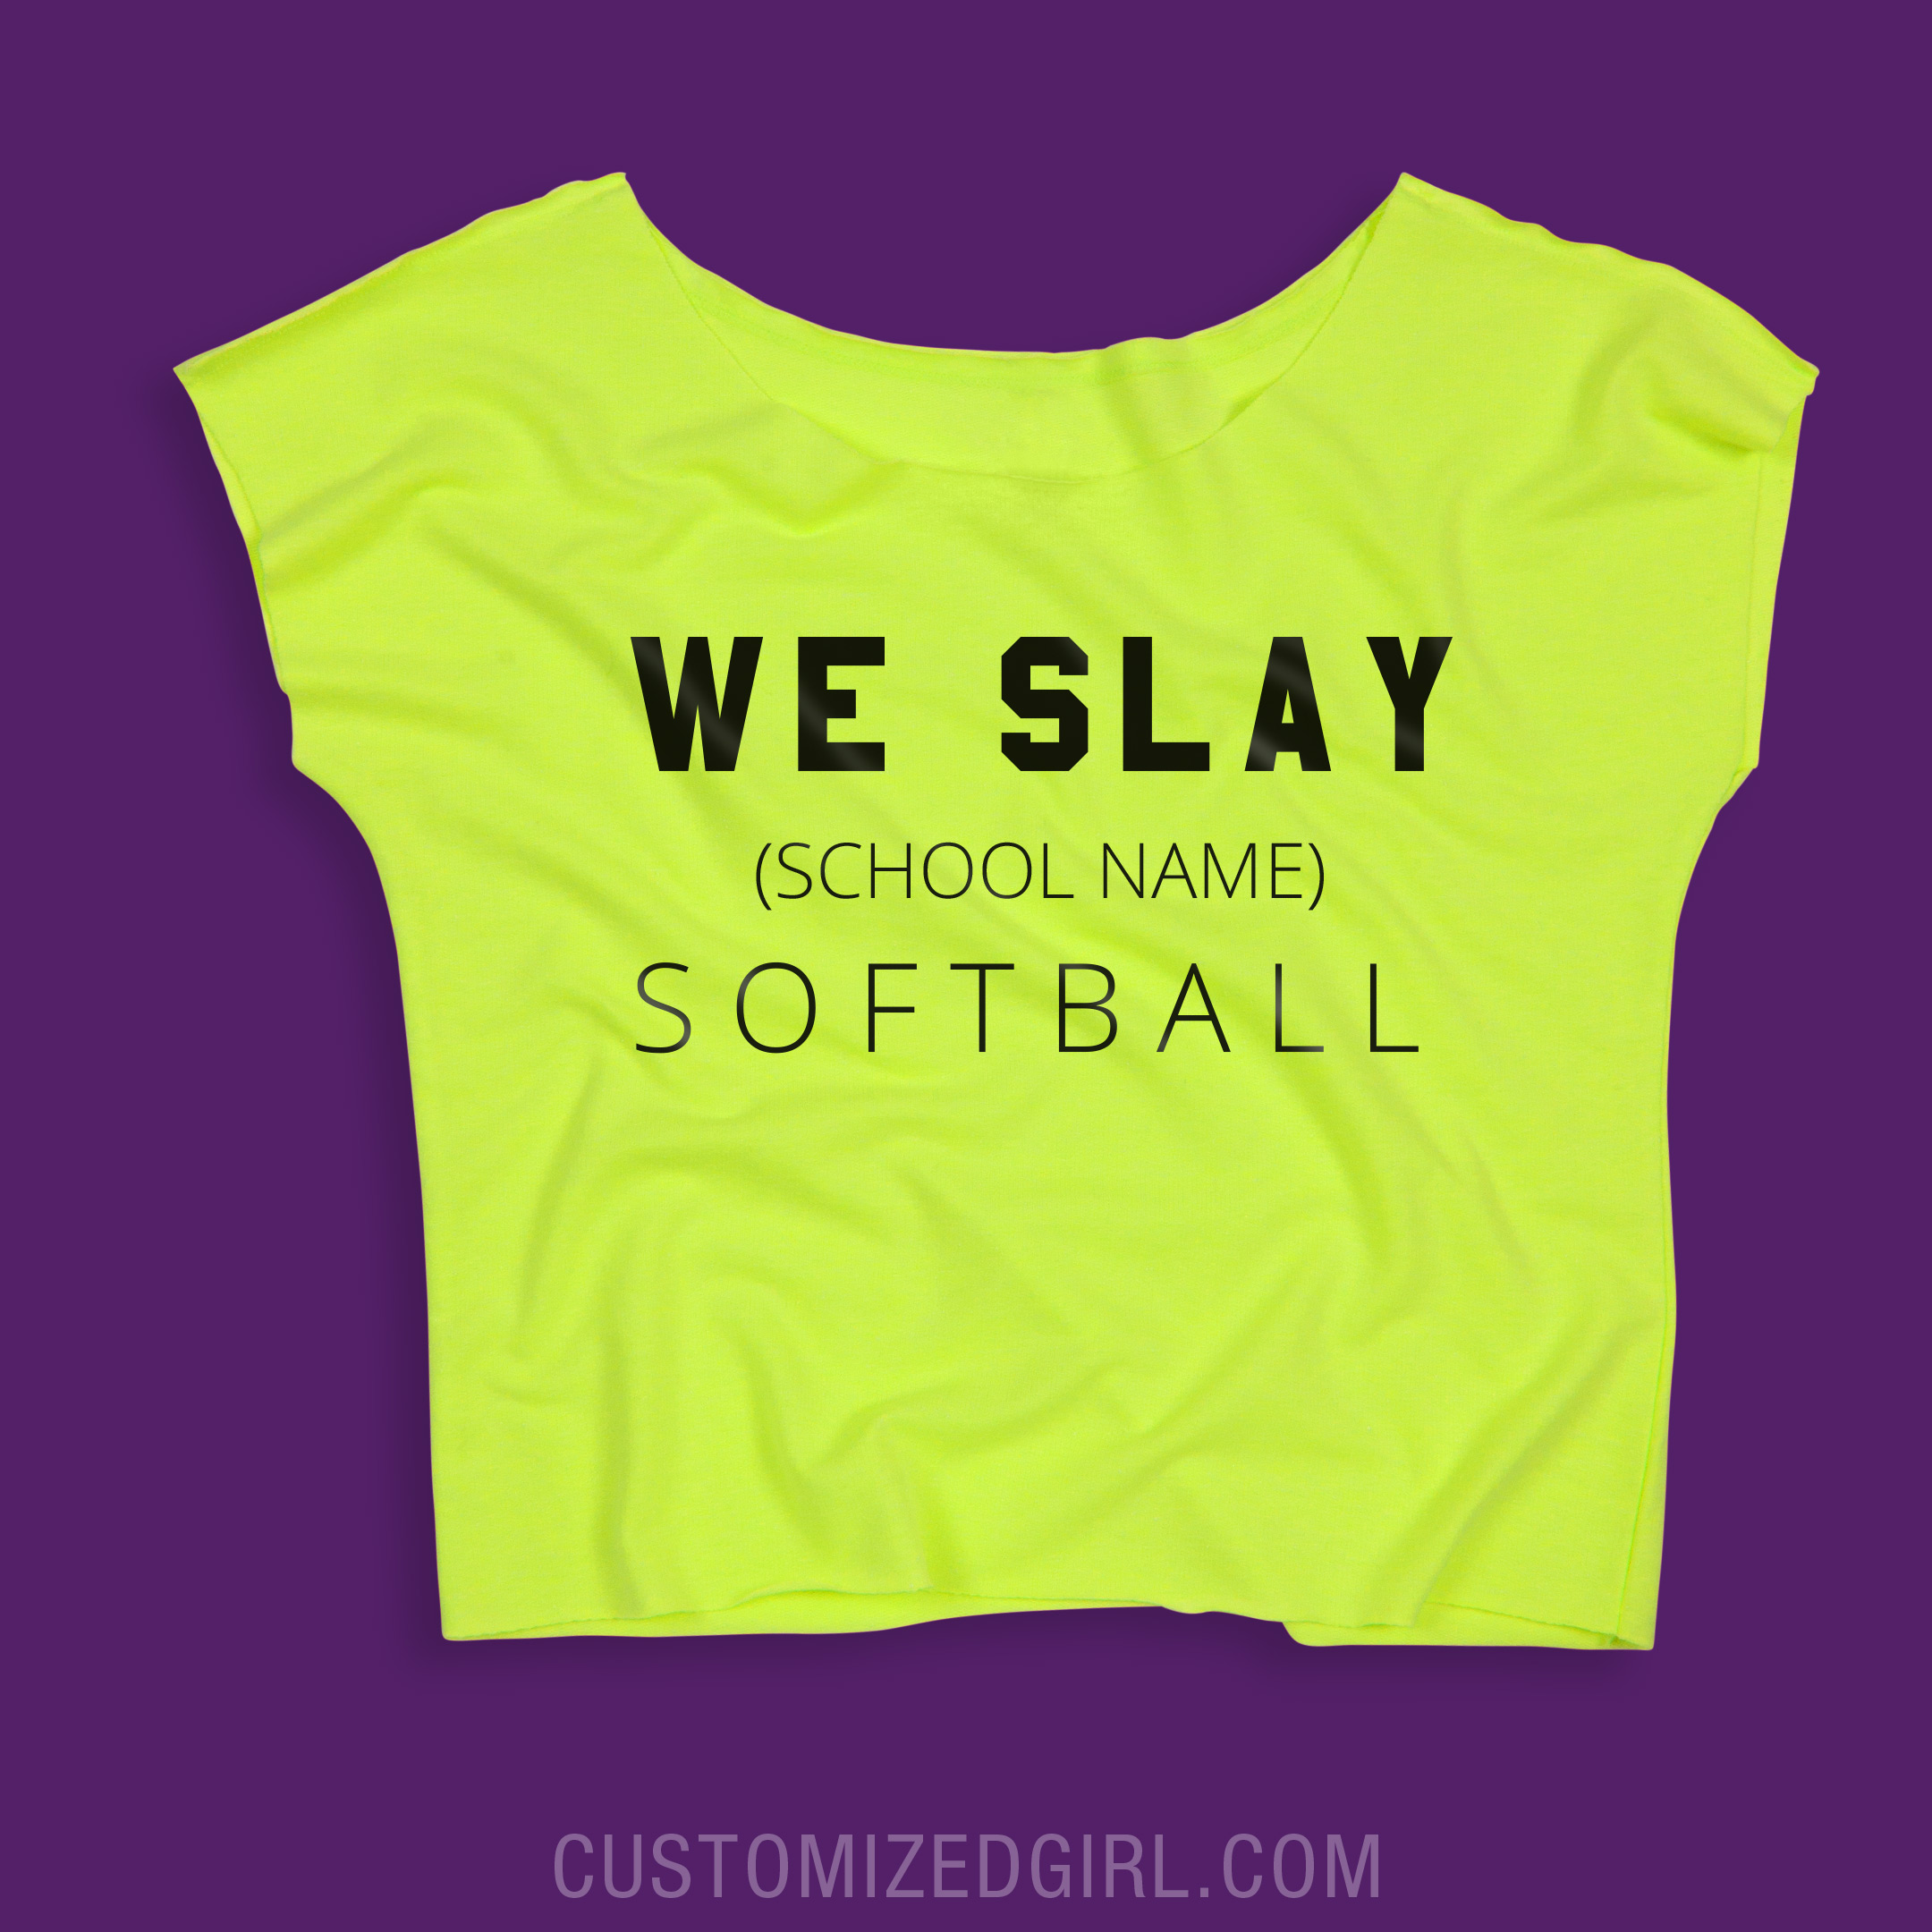 Custom Softball Shirts